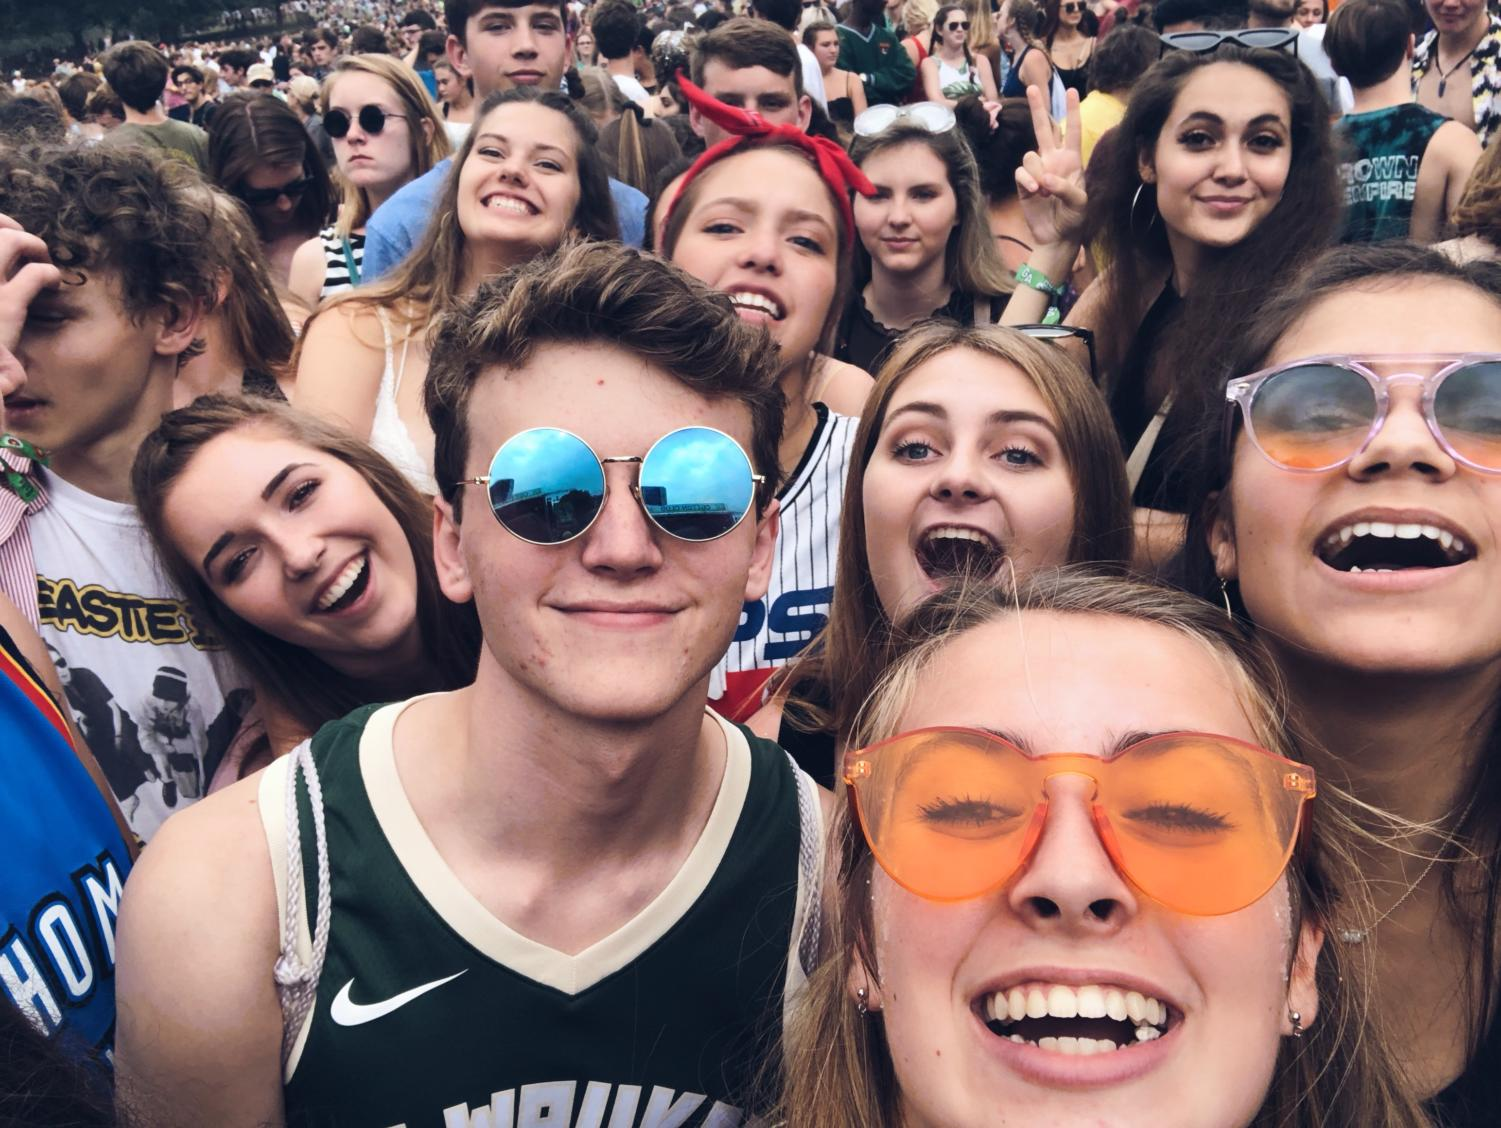 Class of 2020 takes on Music Midtown.